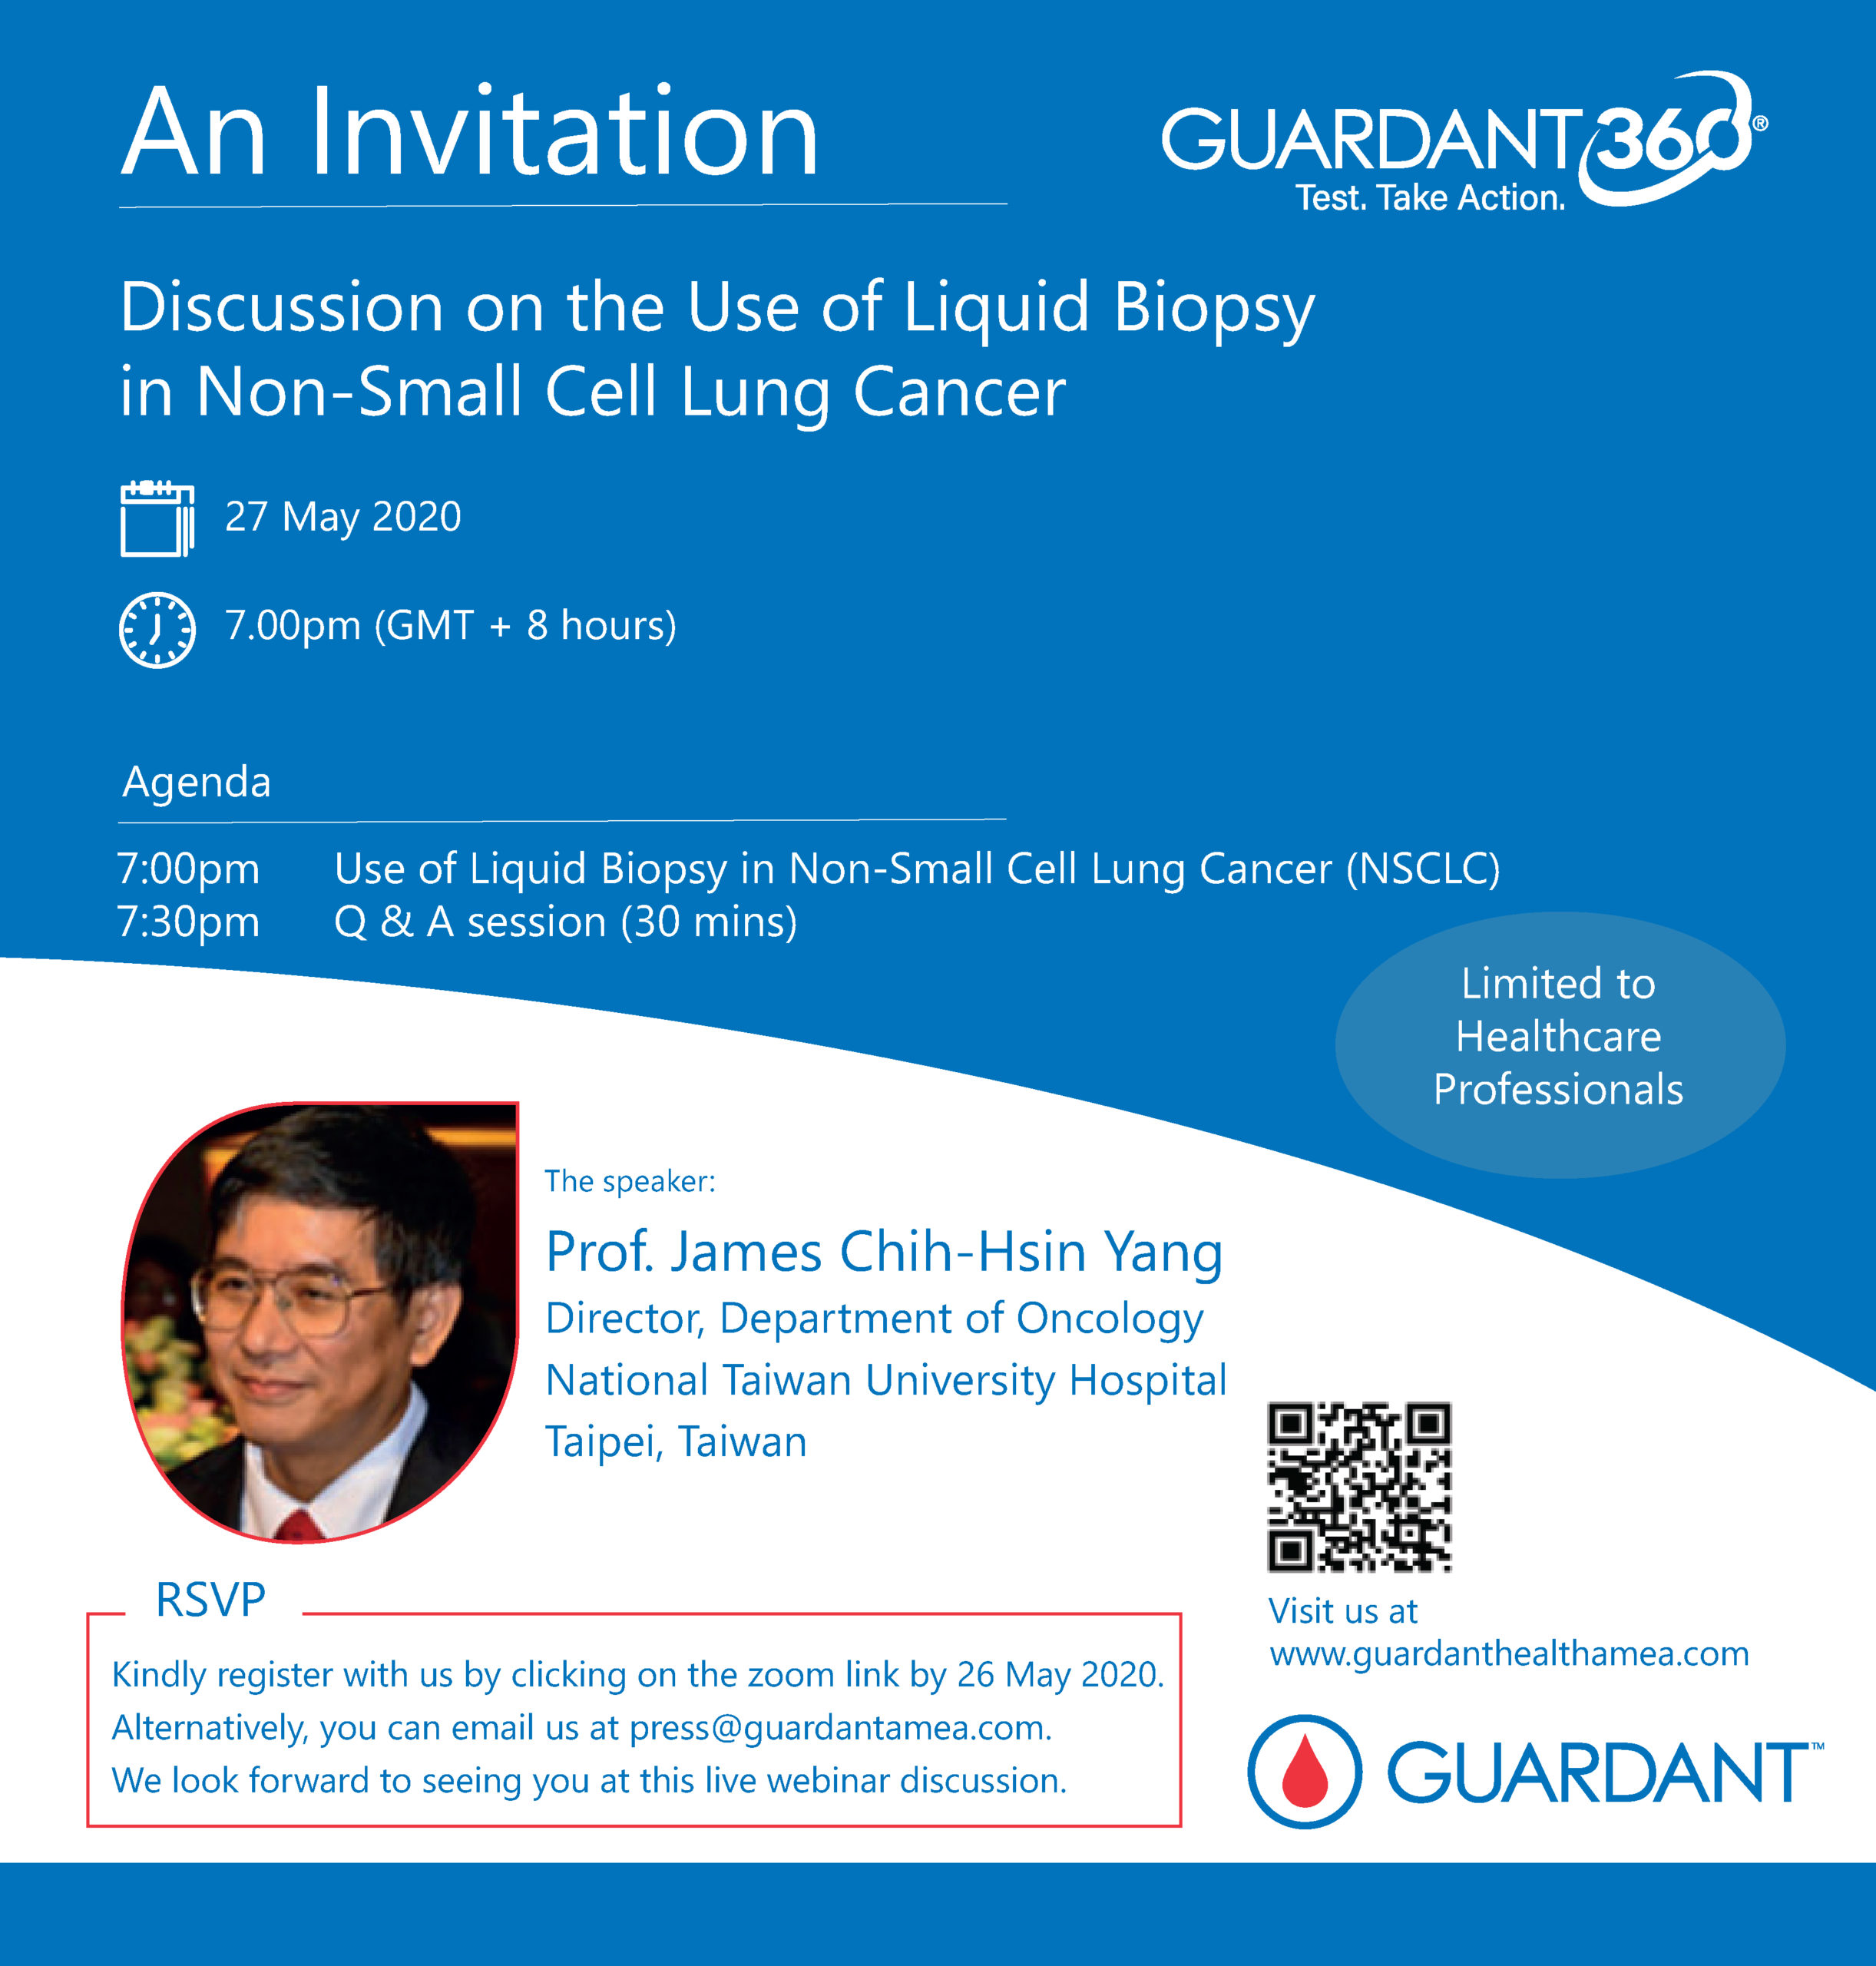 Inviting all medical oncologists! Join us for a Webinar Discussion on the Use of Liquid Biopsy in Non-Small Cell Lung Cancer